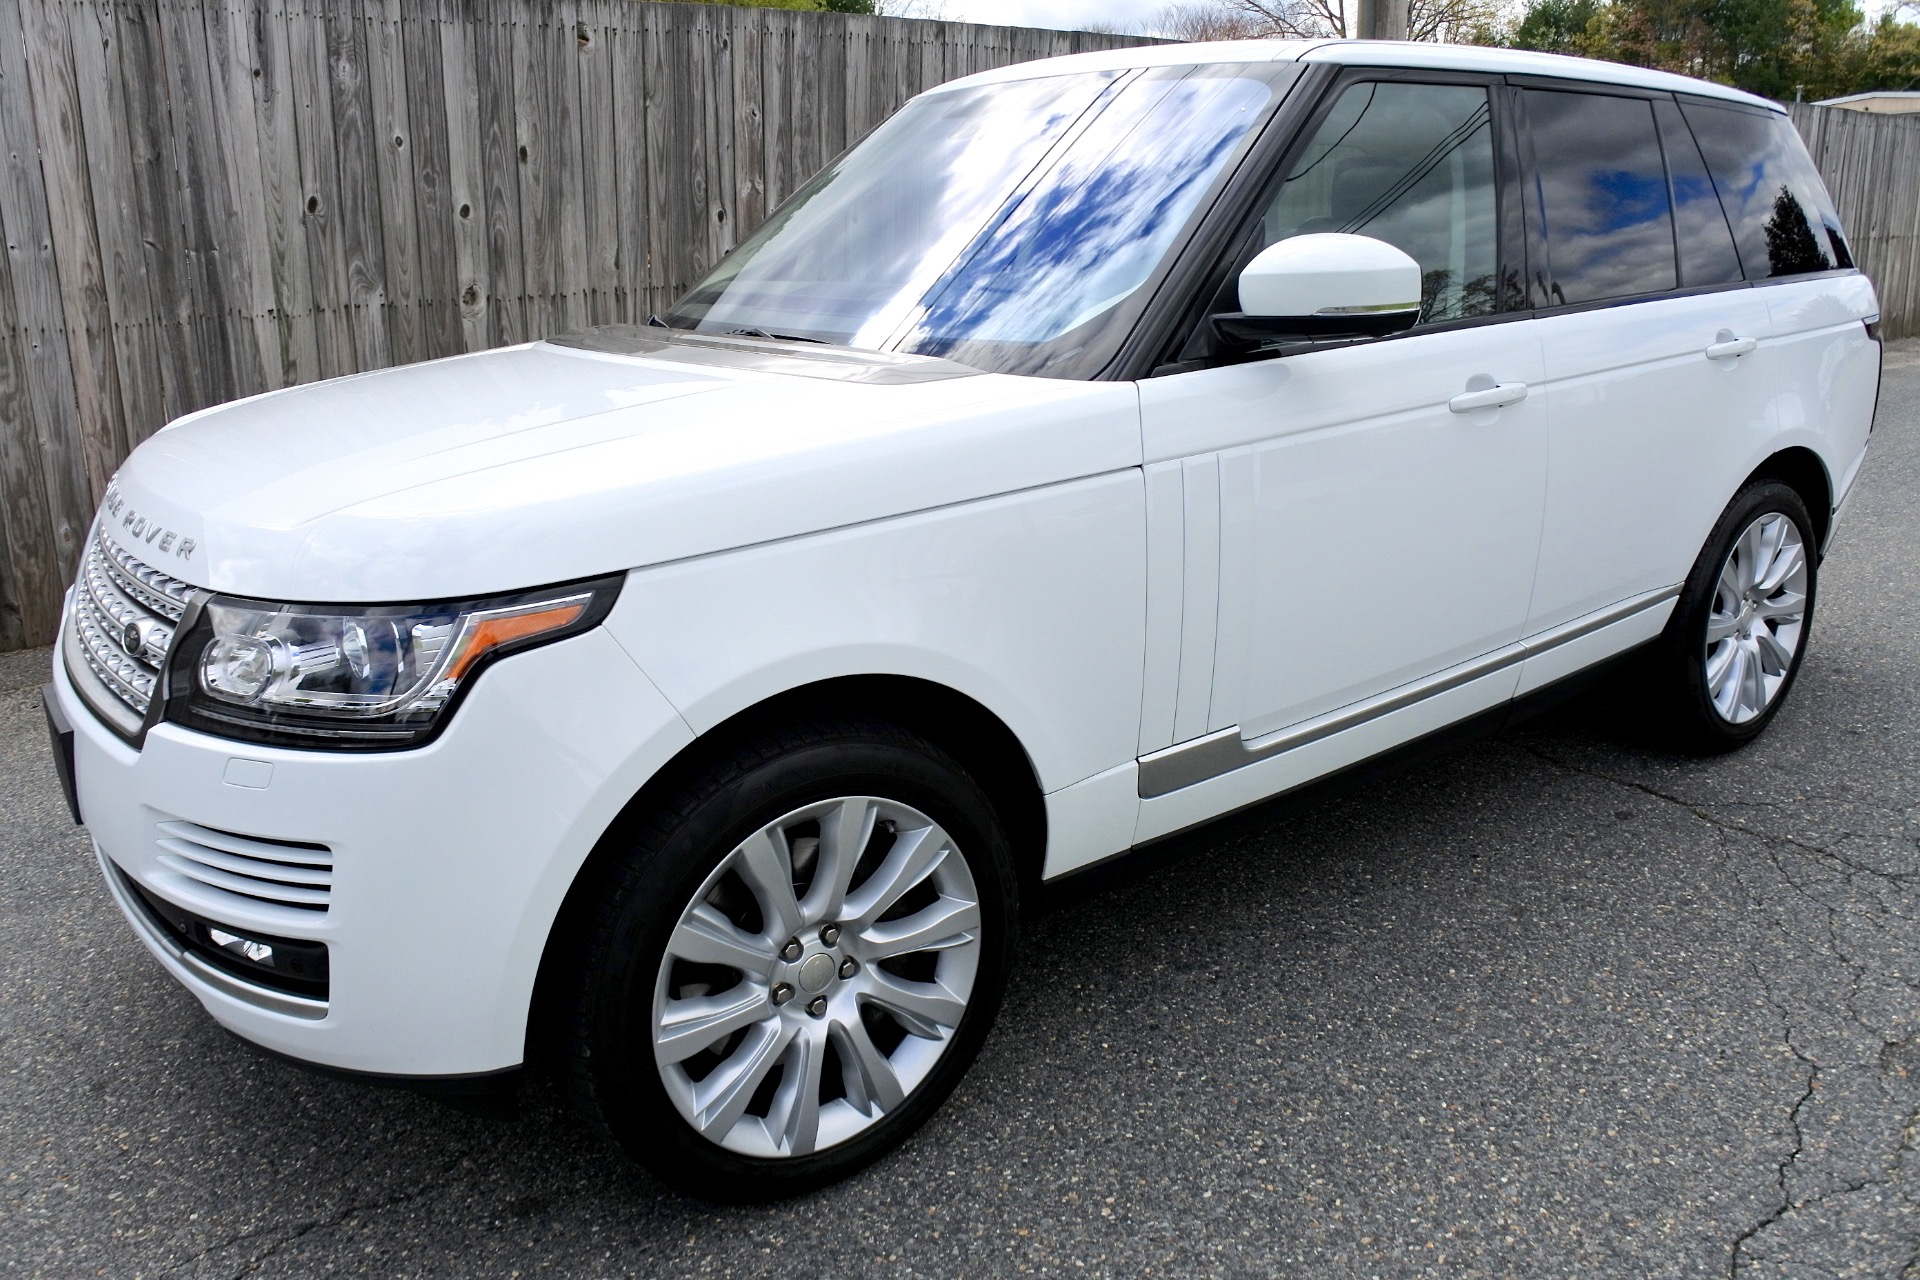 Used 2015 Land Rover Range Rover 4WD 4dr Supercharged Used 2015 Land Rover Range Rover 4WD 4dr Supercharged for sale  at Metro West Motorcars LLC in Shrewsbury MA 1